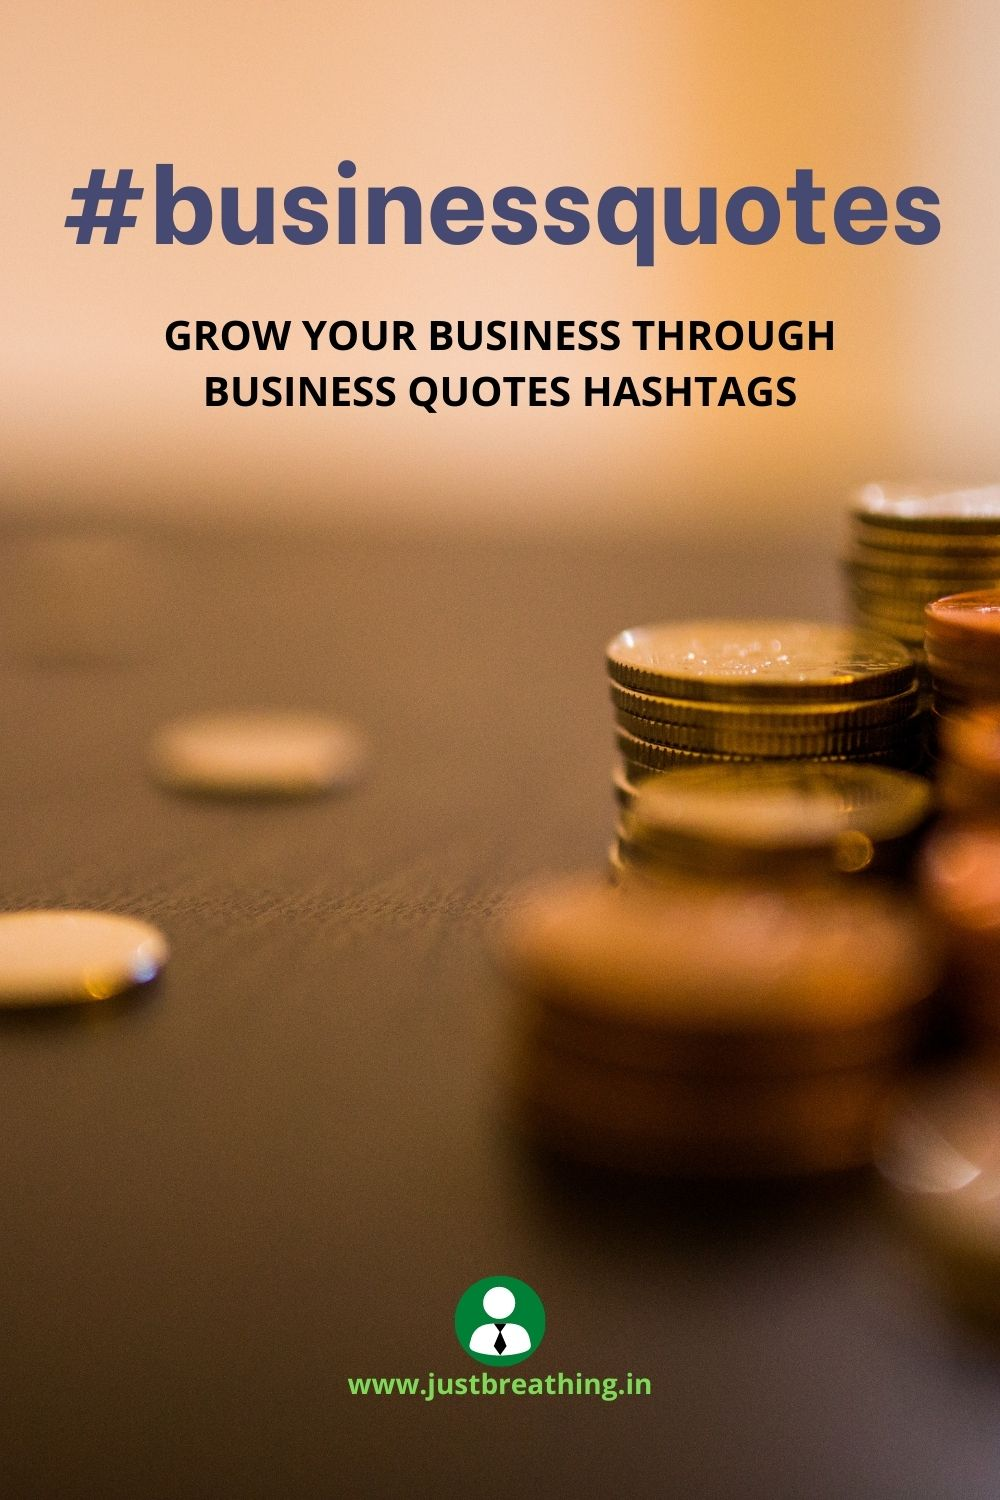 Best Business Quotes Hashtags for your Business Growth Hashtags for business quotes - #businessquotes